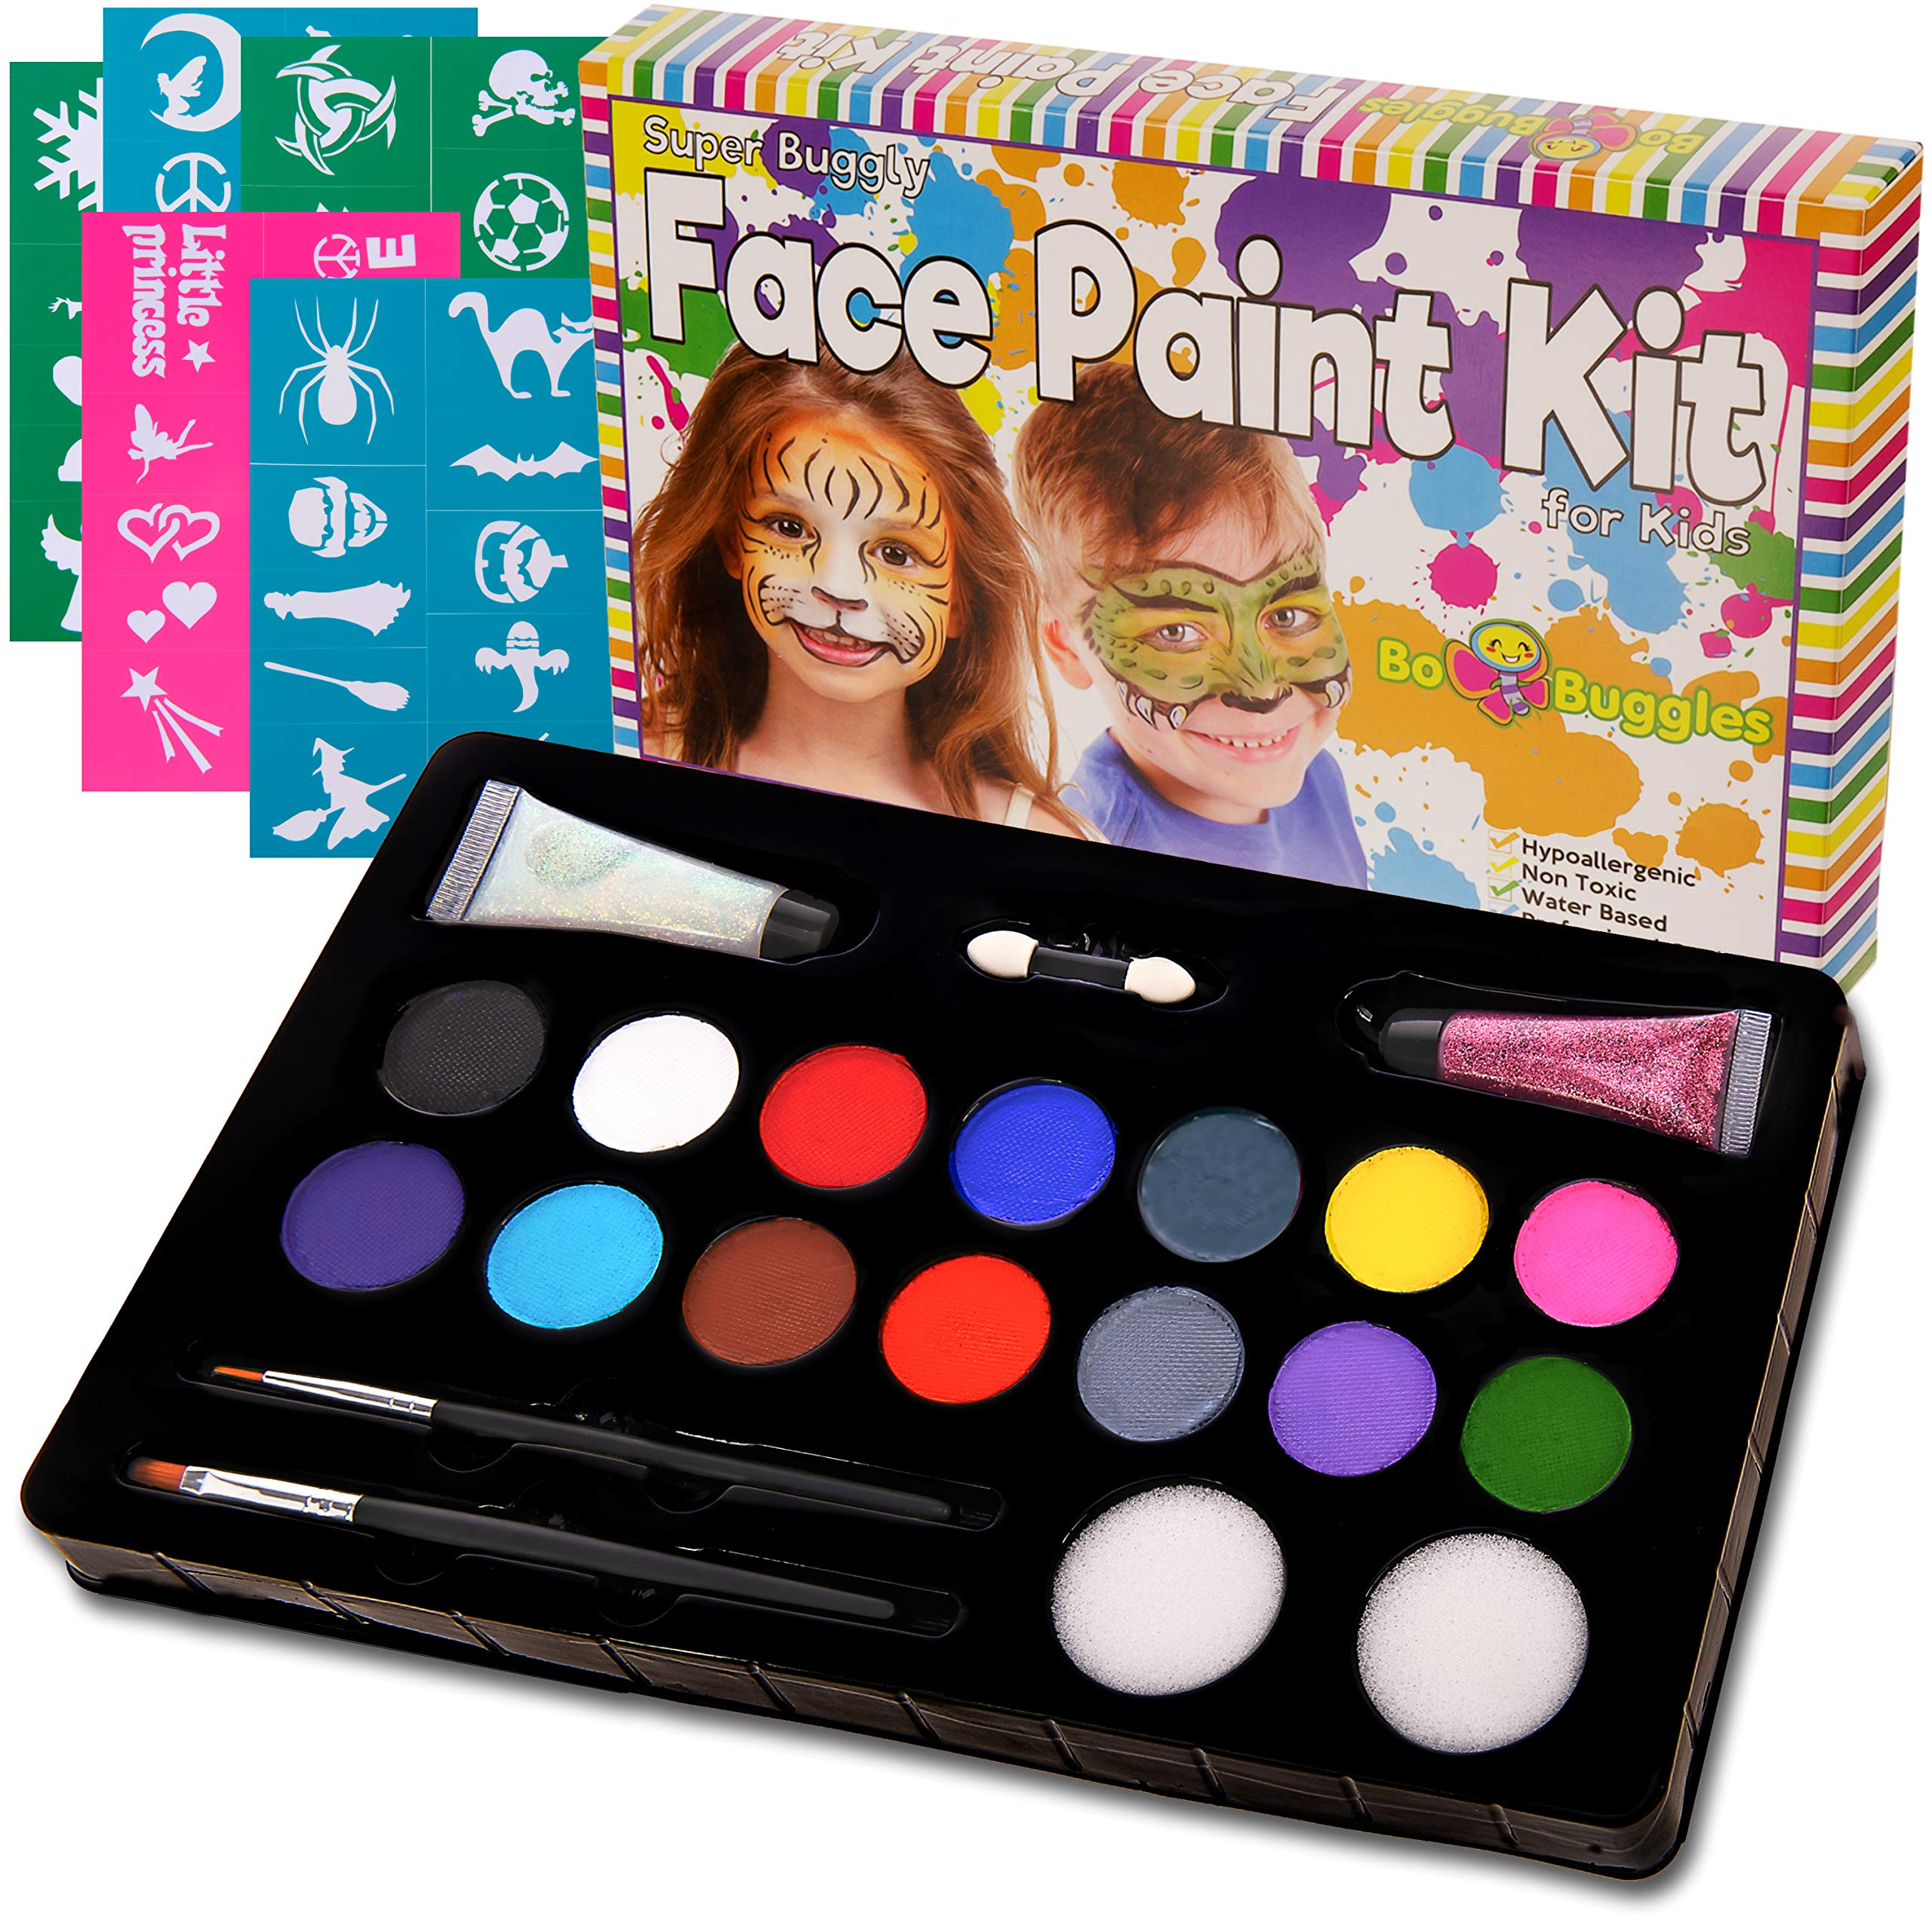 Bo Buggles Kids Face Paint Kit + 50 Stencils.''Super Buggly Kit'' with 14 Paints; 2 Glitter Gels; Large 4 gram Professional Paints; 2 Brushes; 2 Sponges. Pro-Quality Non-Toxic Face Painting Palette